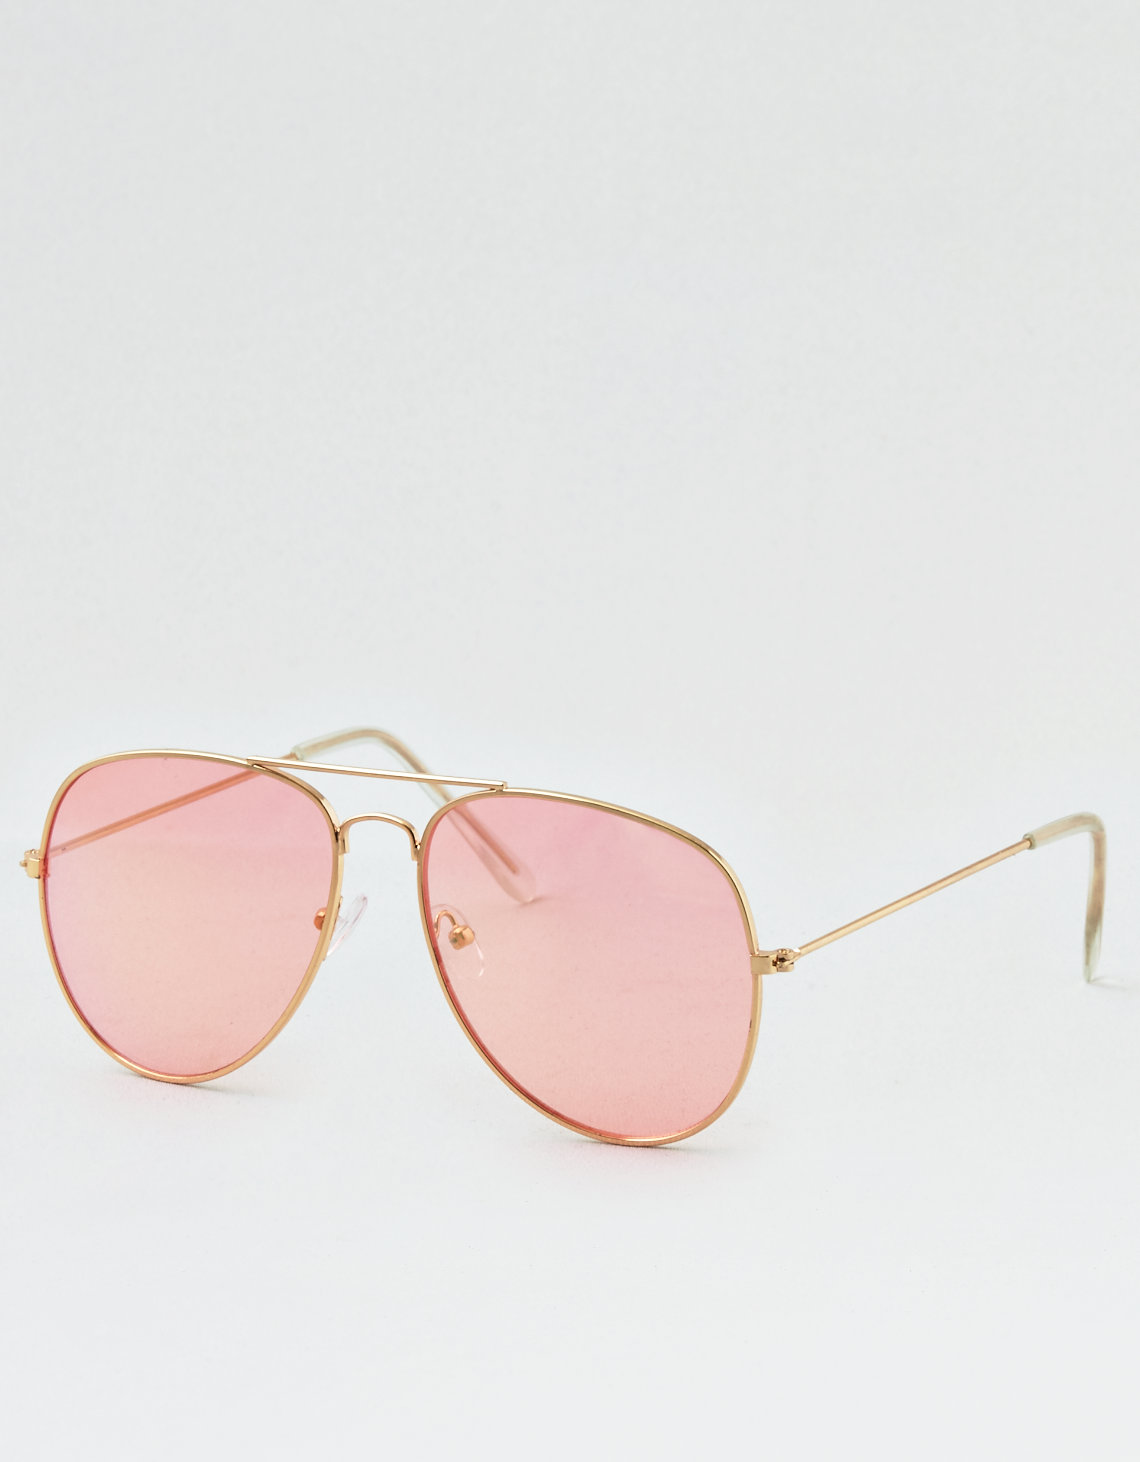 Pink Lens Gold Frame Aviator Sunglasses Pretty Little Thing RWRcBVmn